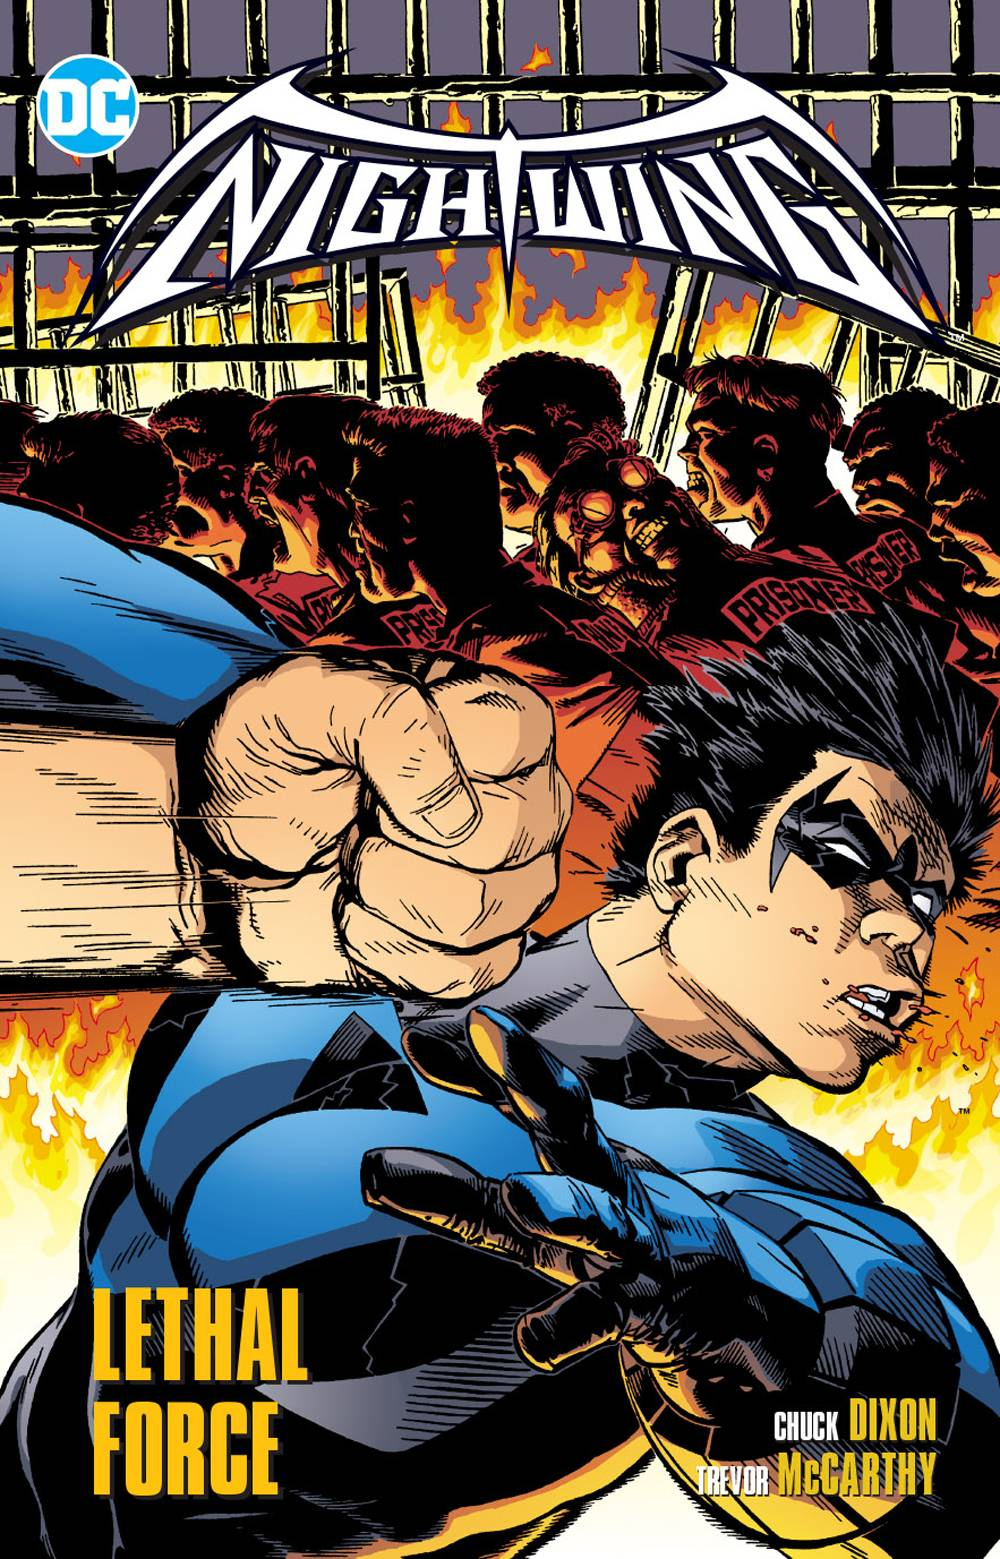 NIGHTWING TP VOL 08 LETHAL FORCE [#61-70